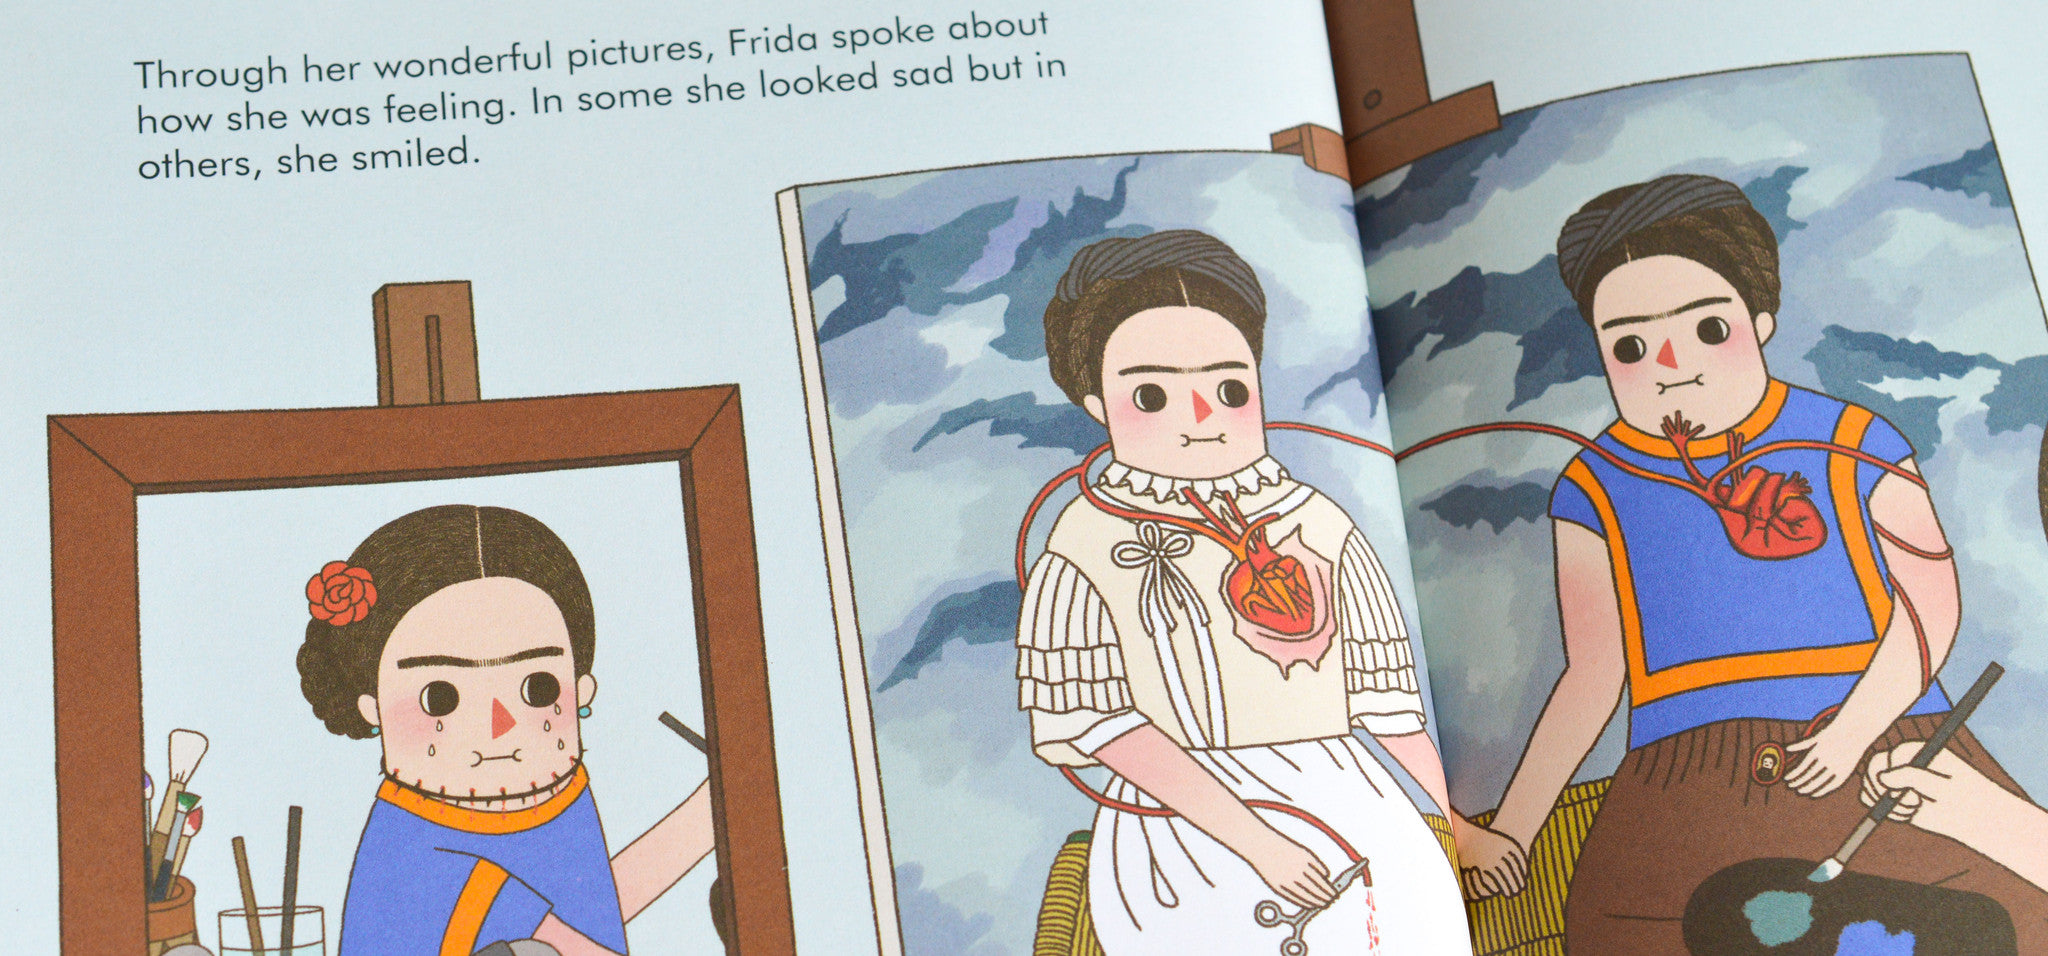 Little People Big Dreams - Frida Kahlo